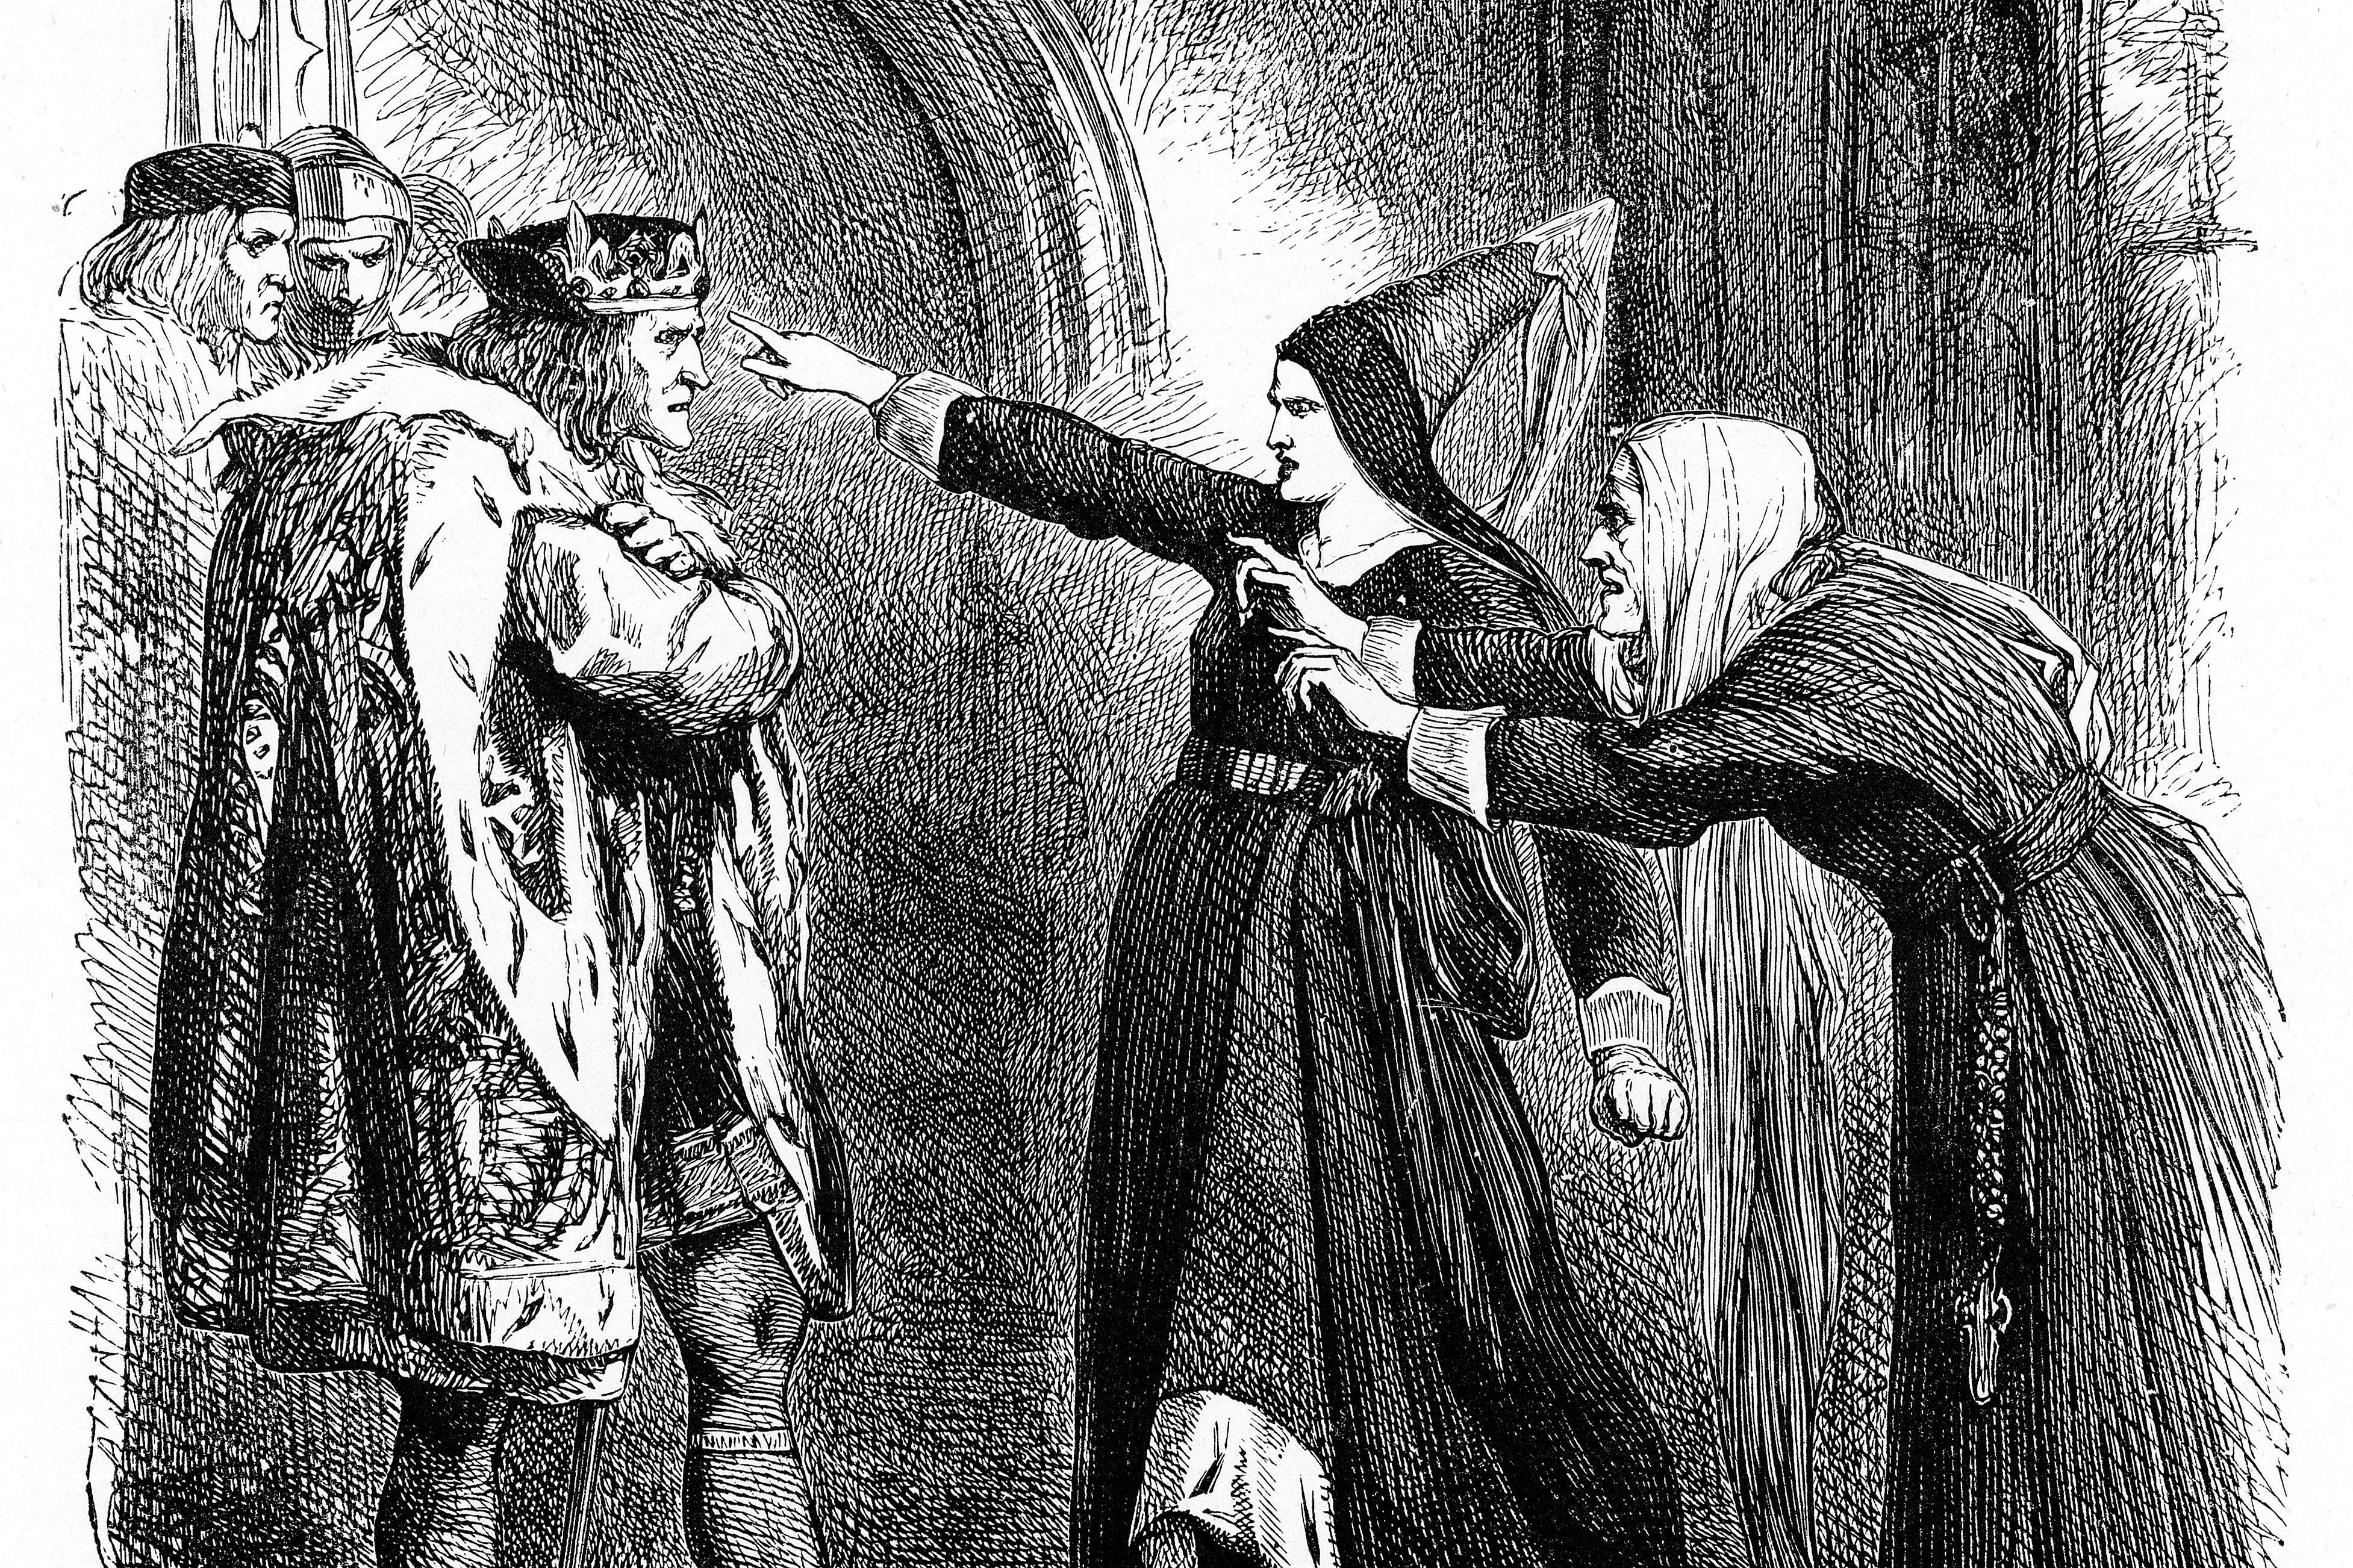 Shakespeare Scene: Richard III confronted by Elizabeth Woodville and Cecily Neville